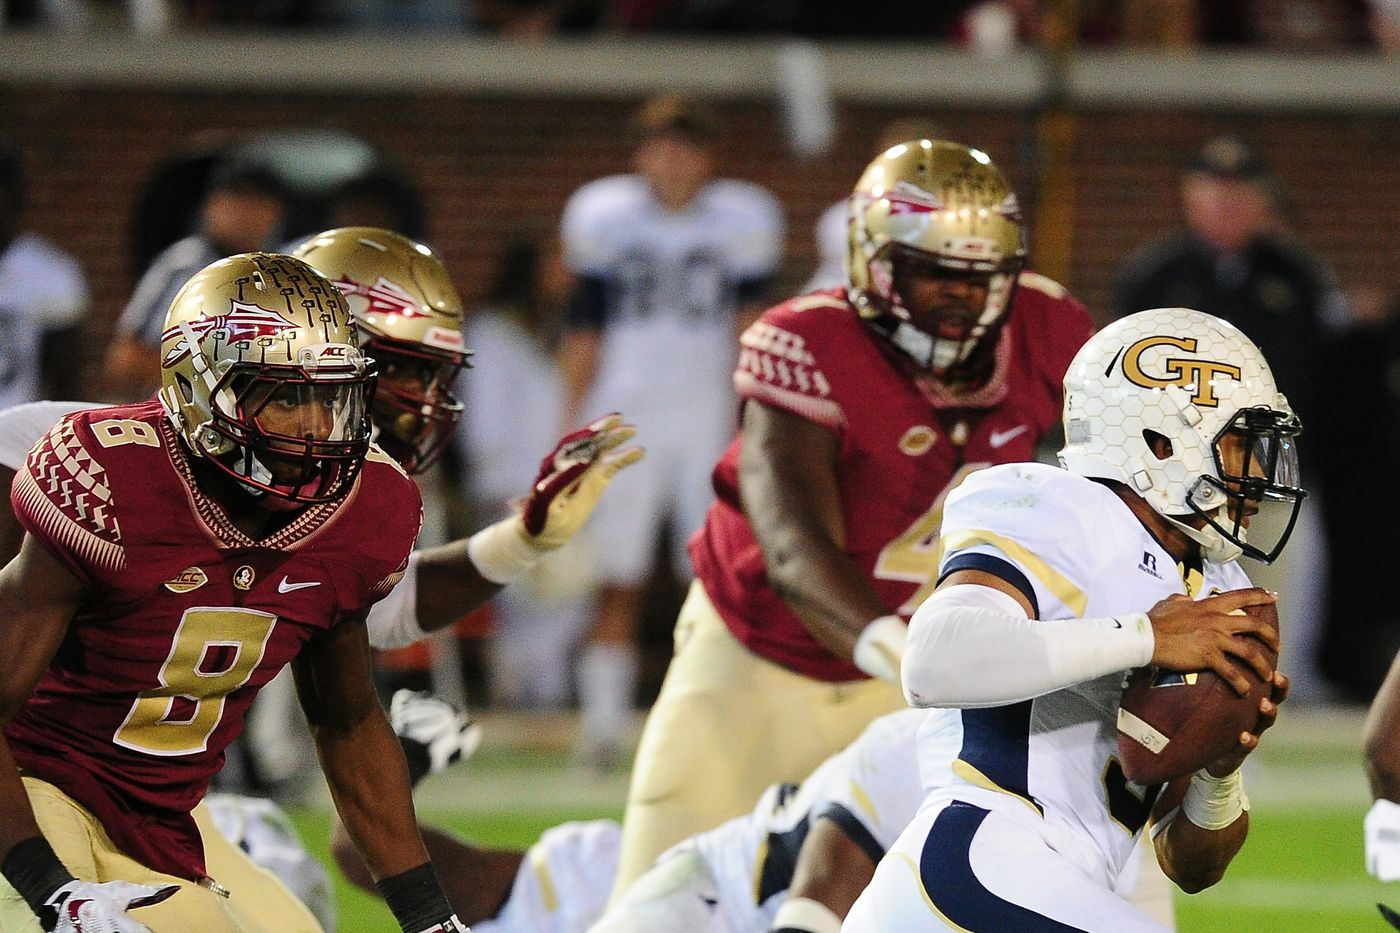 Florida State Football Vs Georgia Tech Kickoff Time How To Watch Tomahawk Nation